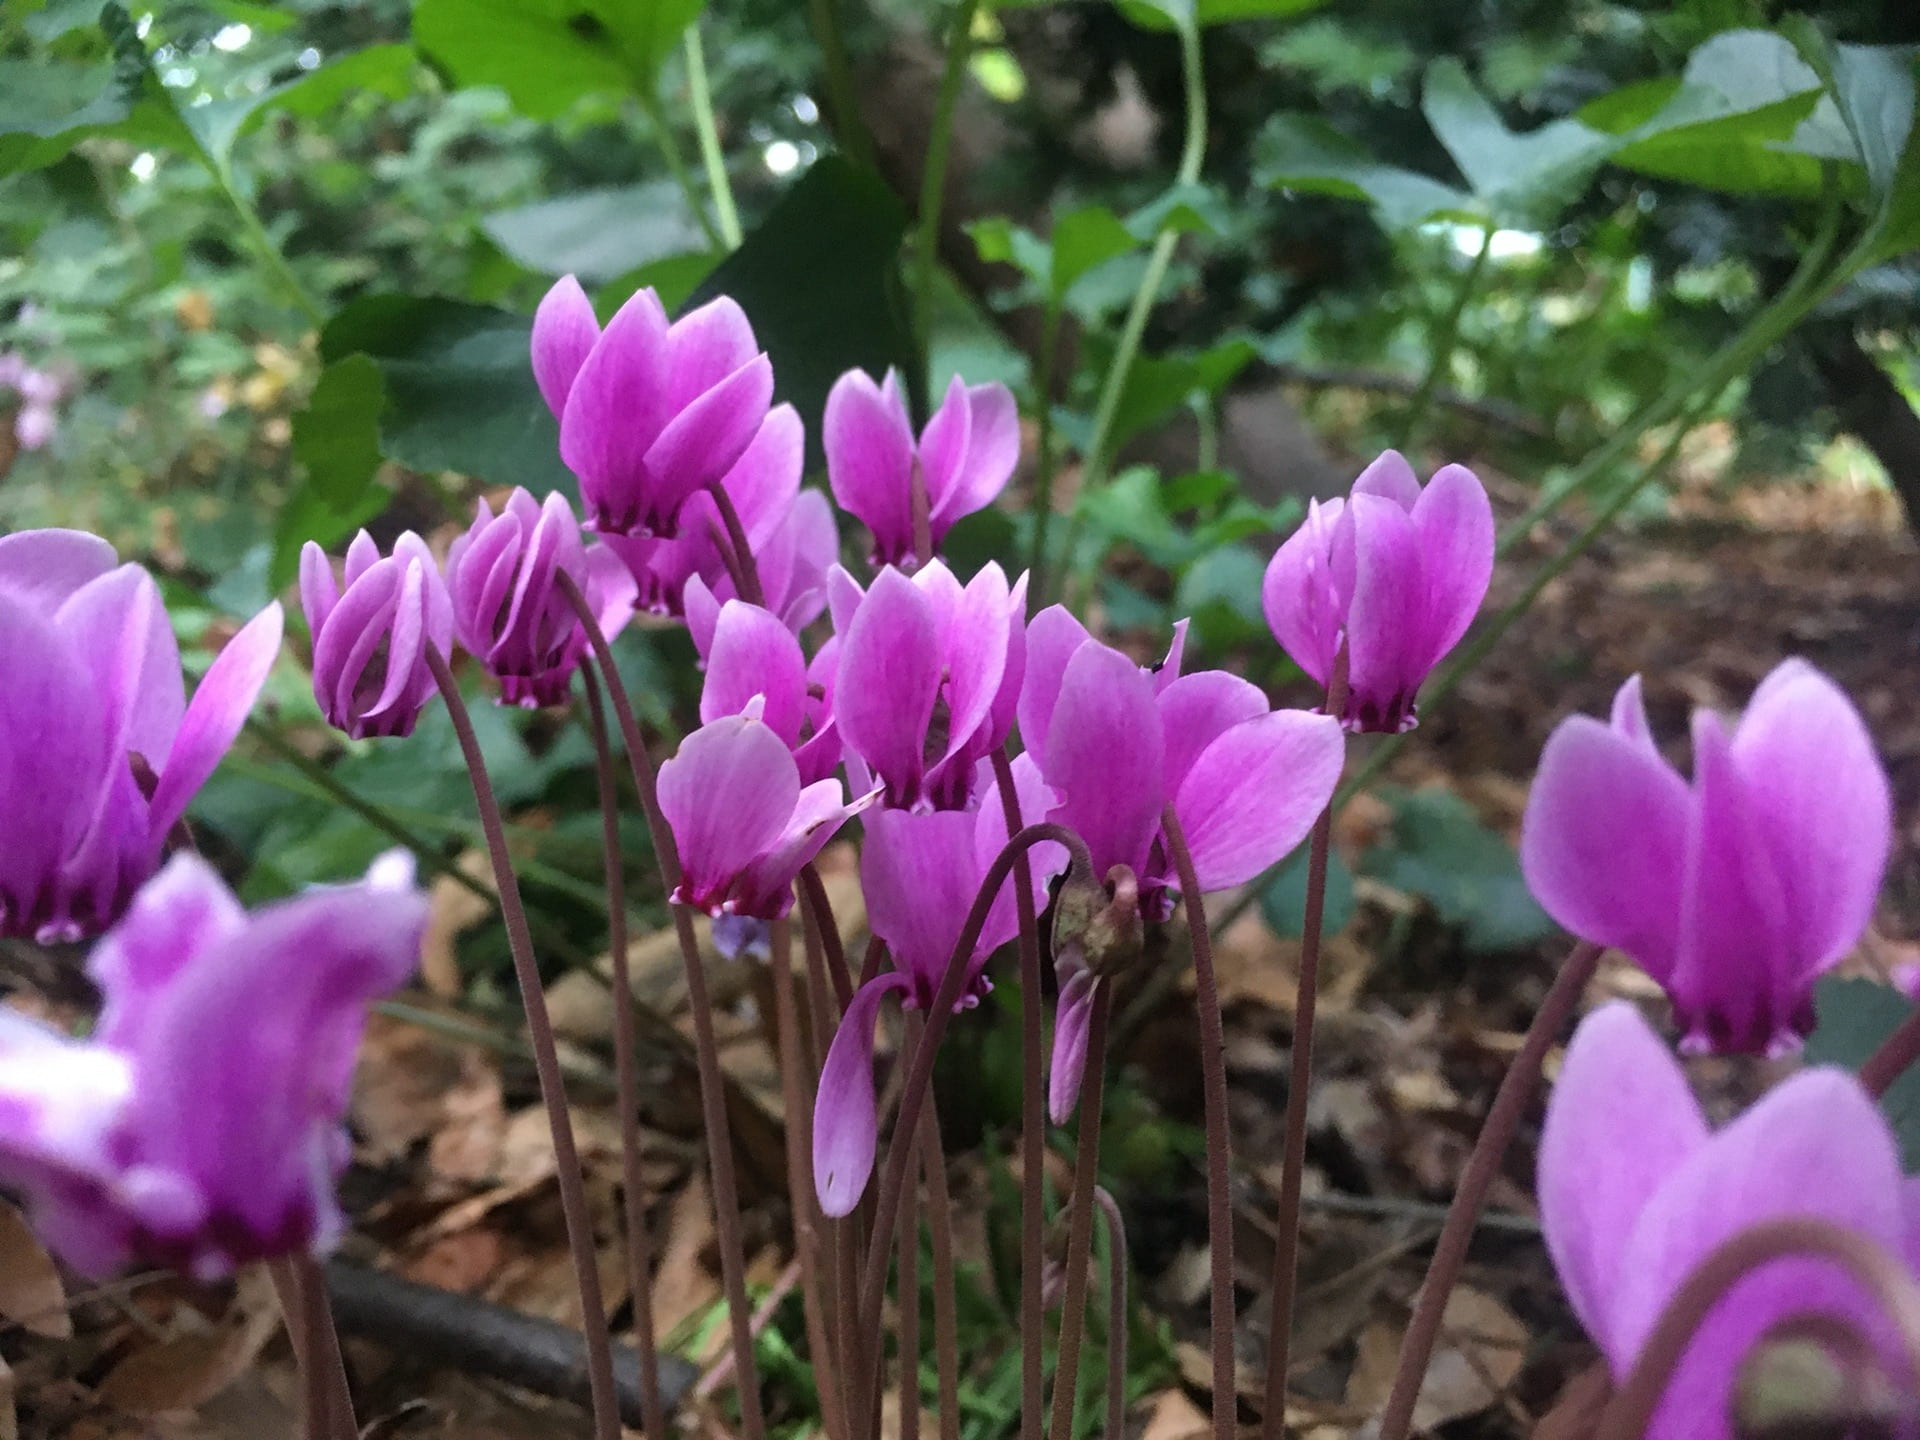 The flowers of Cyclamen hederifolium are like small jewels in the park.